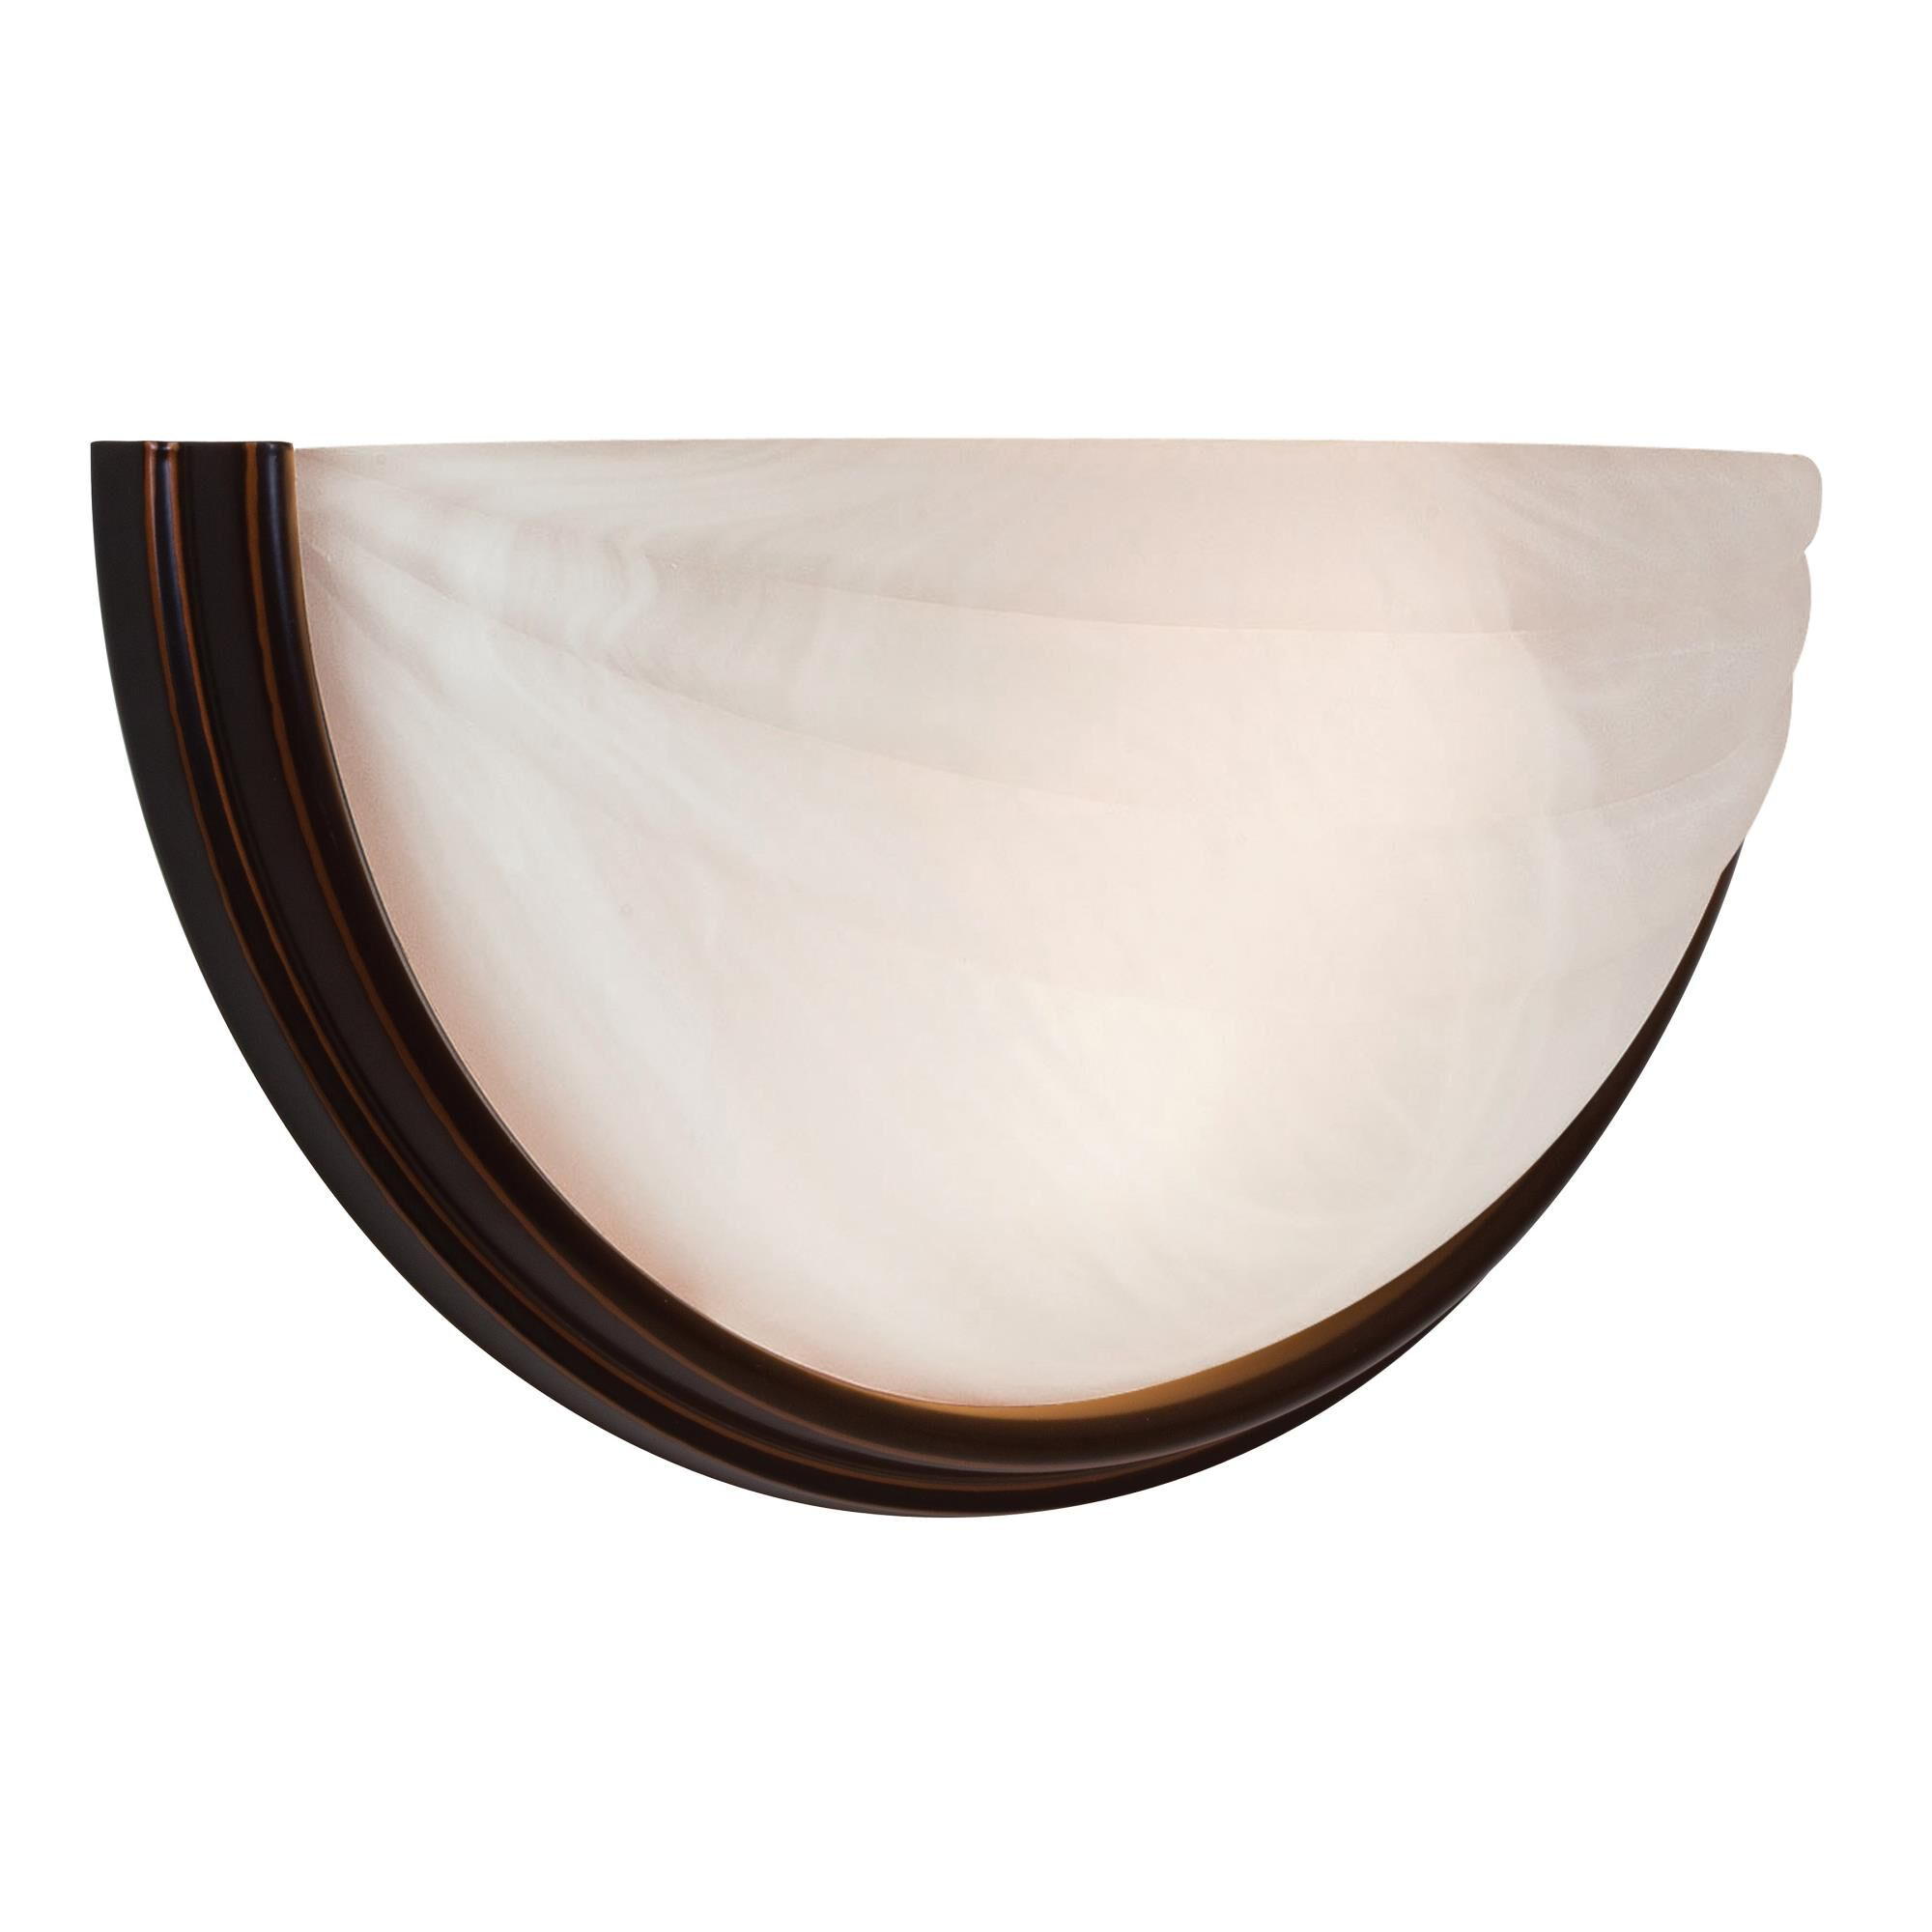 Access Lighting Crest 13 Inch LED Wall Sconce Crest 20635LEDD ORBALB Transitional